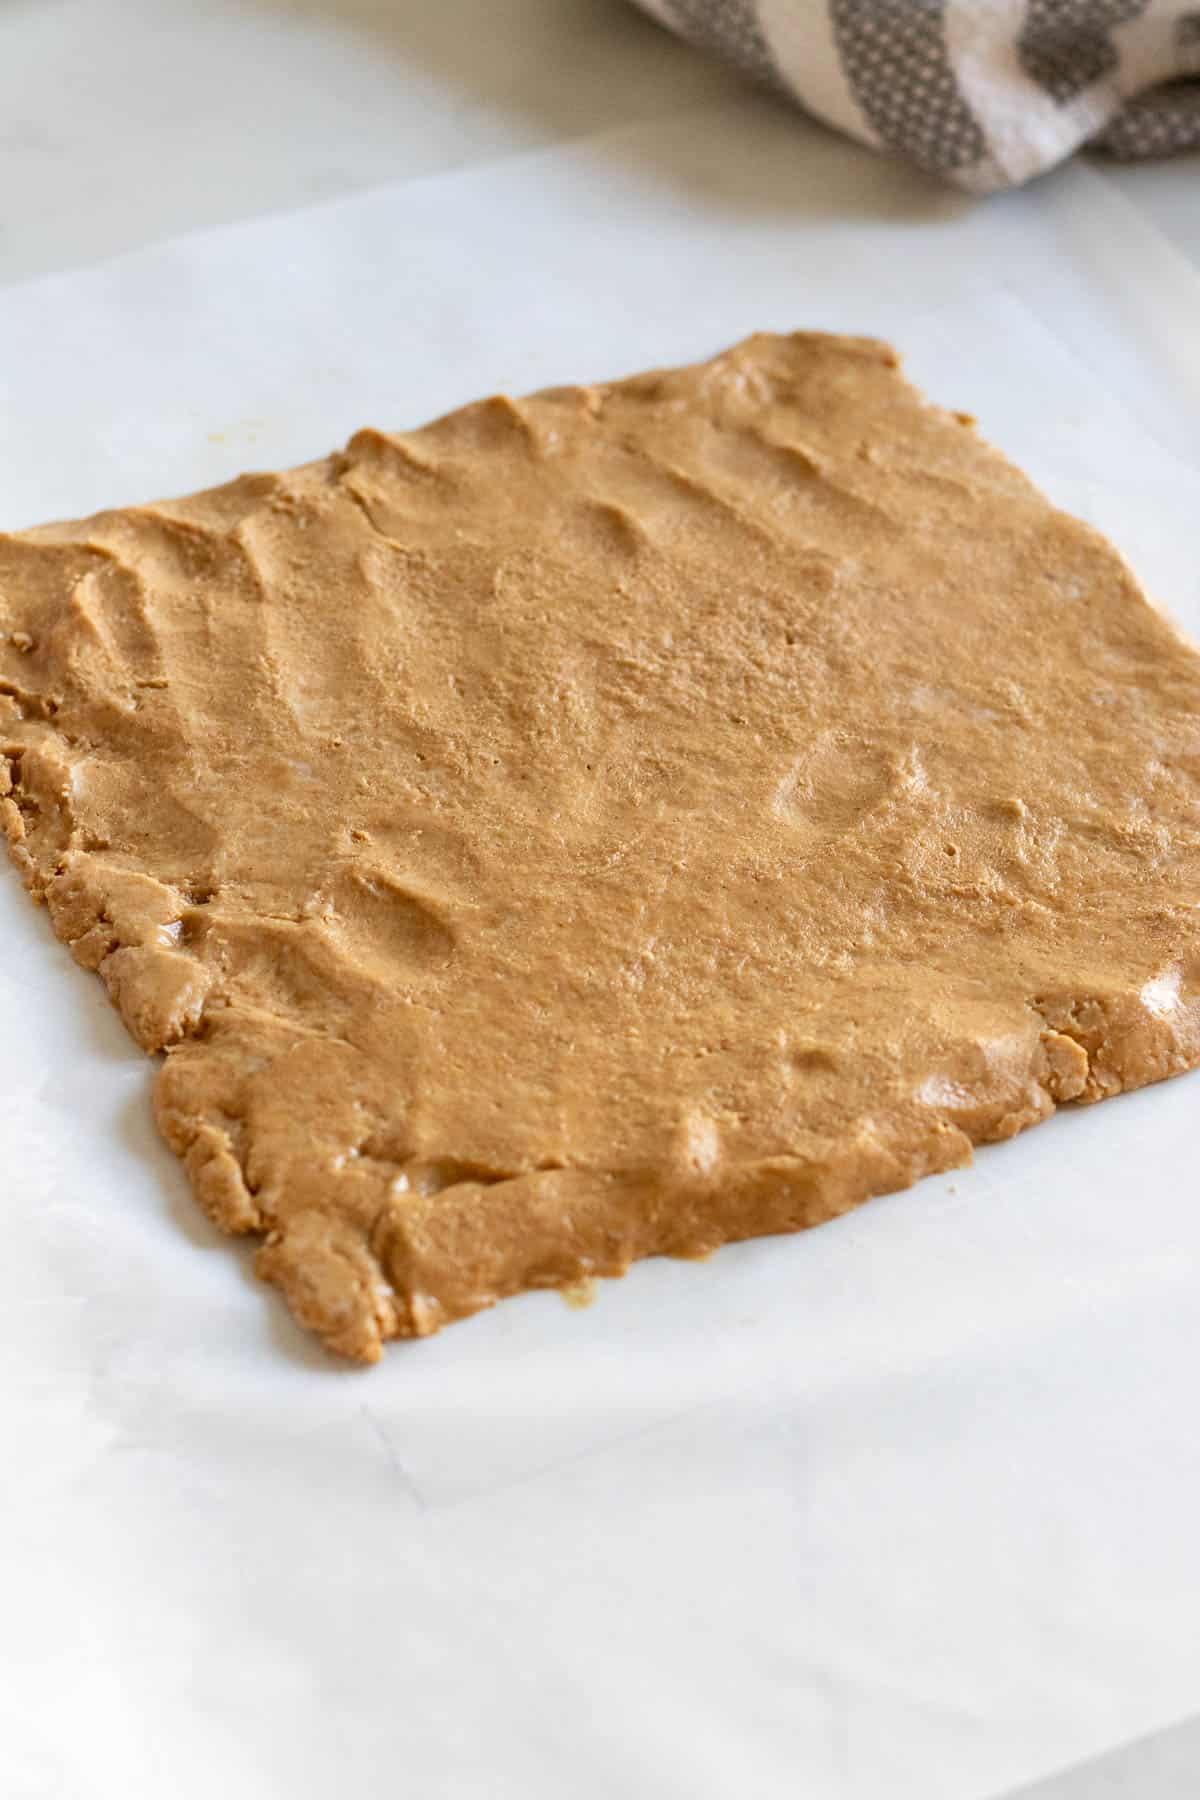 peanut butter filling rolled out into a square sitting on parchment